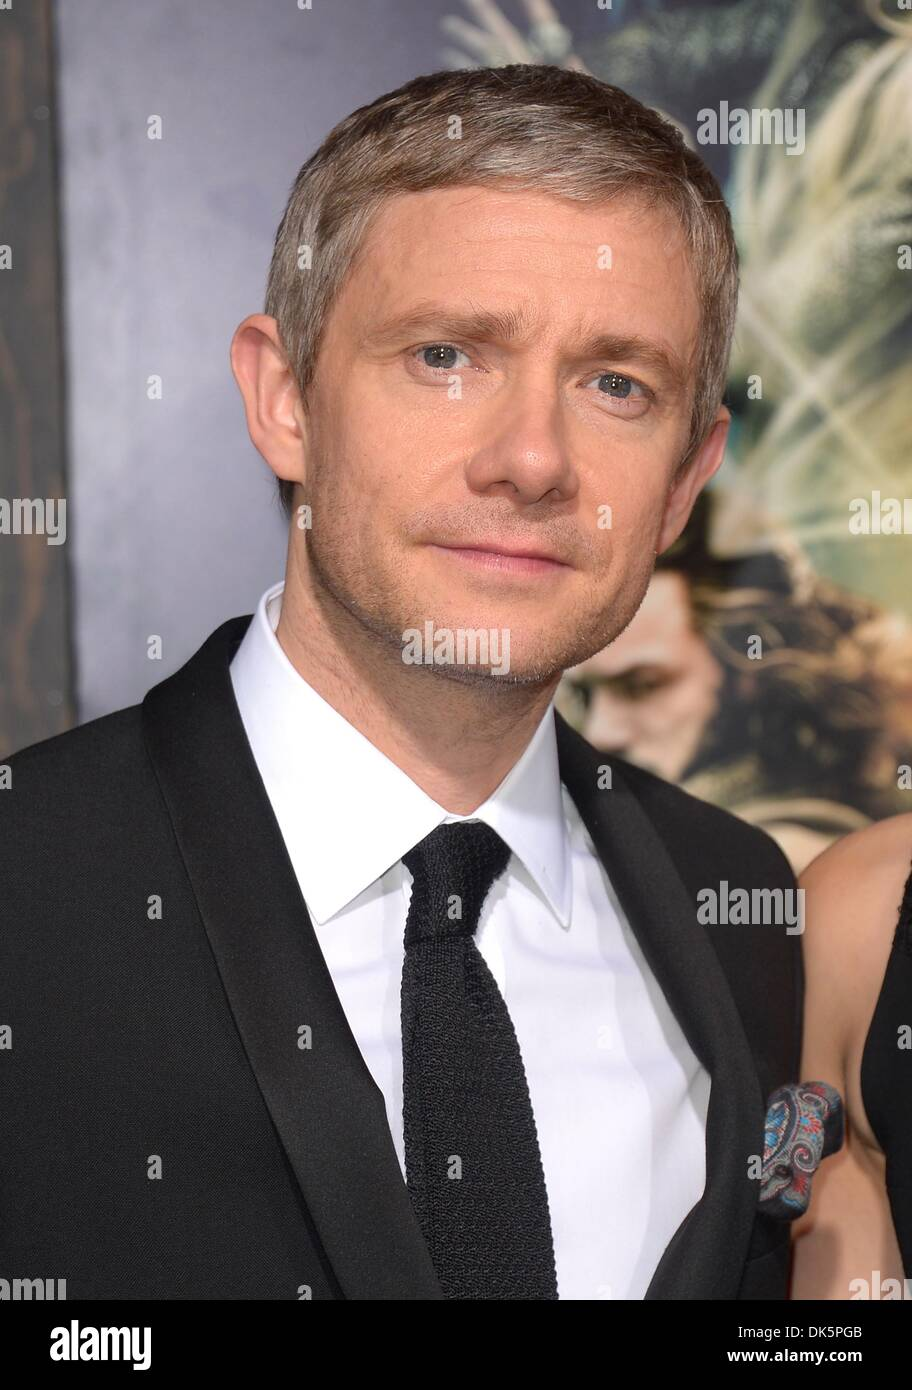 Los Angeles, USA. 2nd December 2013. Martin Freeman arrives at premiere for The Hobbit, Desolation of Smaug, Los Angeles, America - 2 Dec 2013 Credit:  Sydney Alford/Alamy Live News - Stock Image